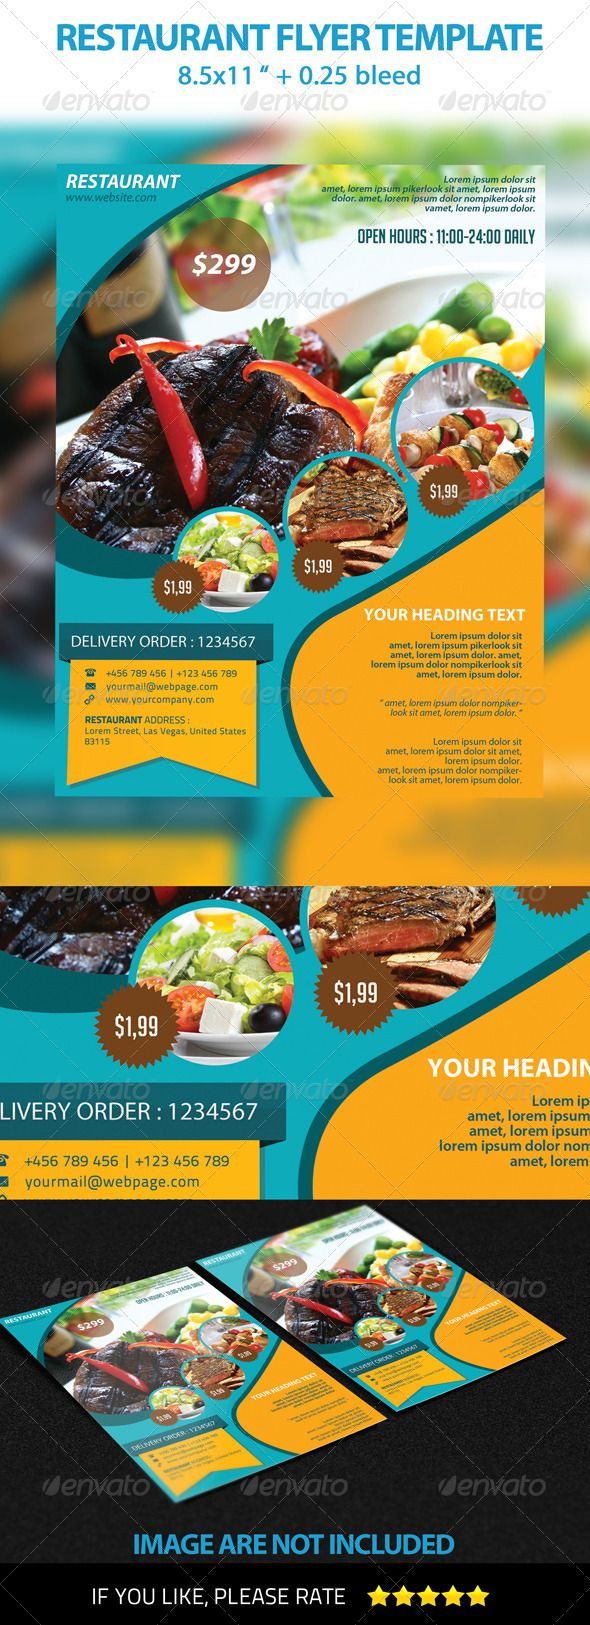 best ideas about print templates fonts flyer 91 best ideas about print templates fonts flyer template and texts